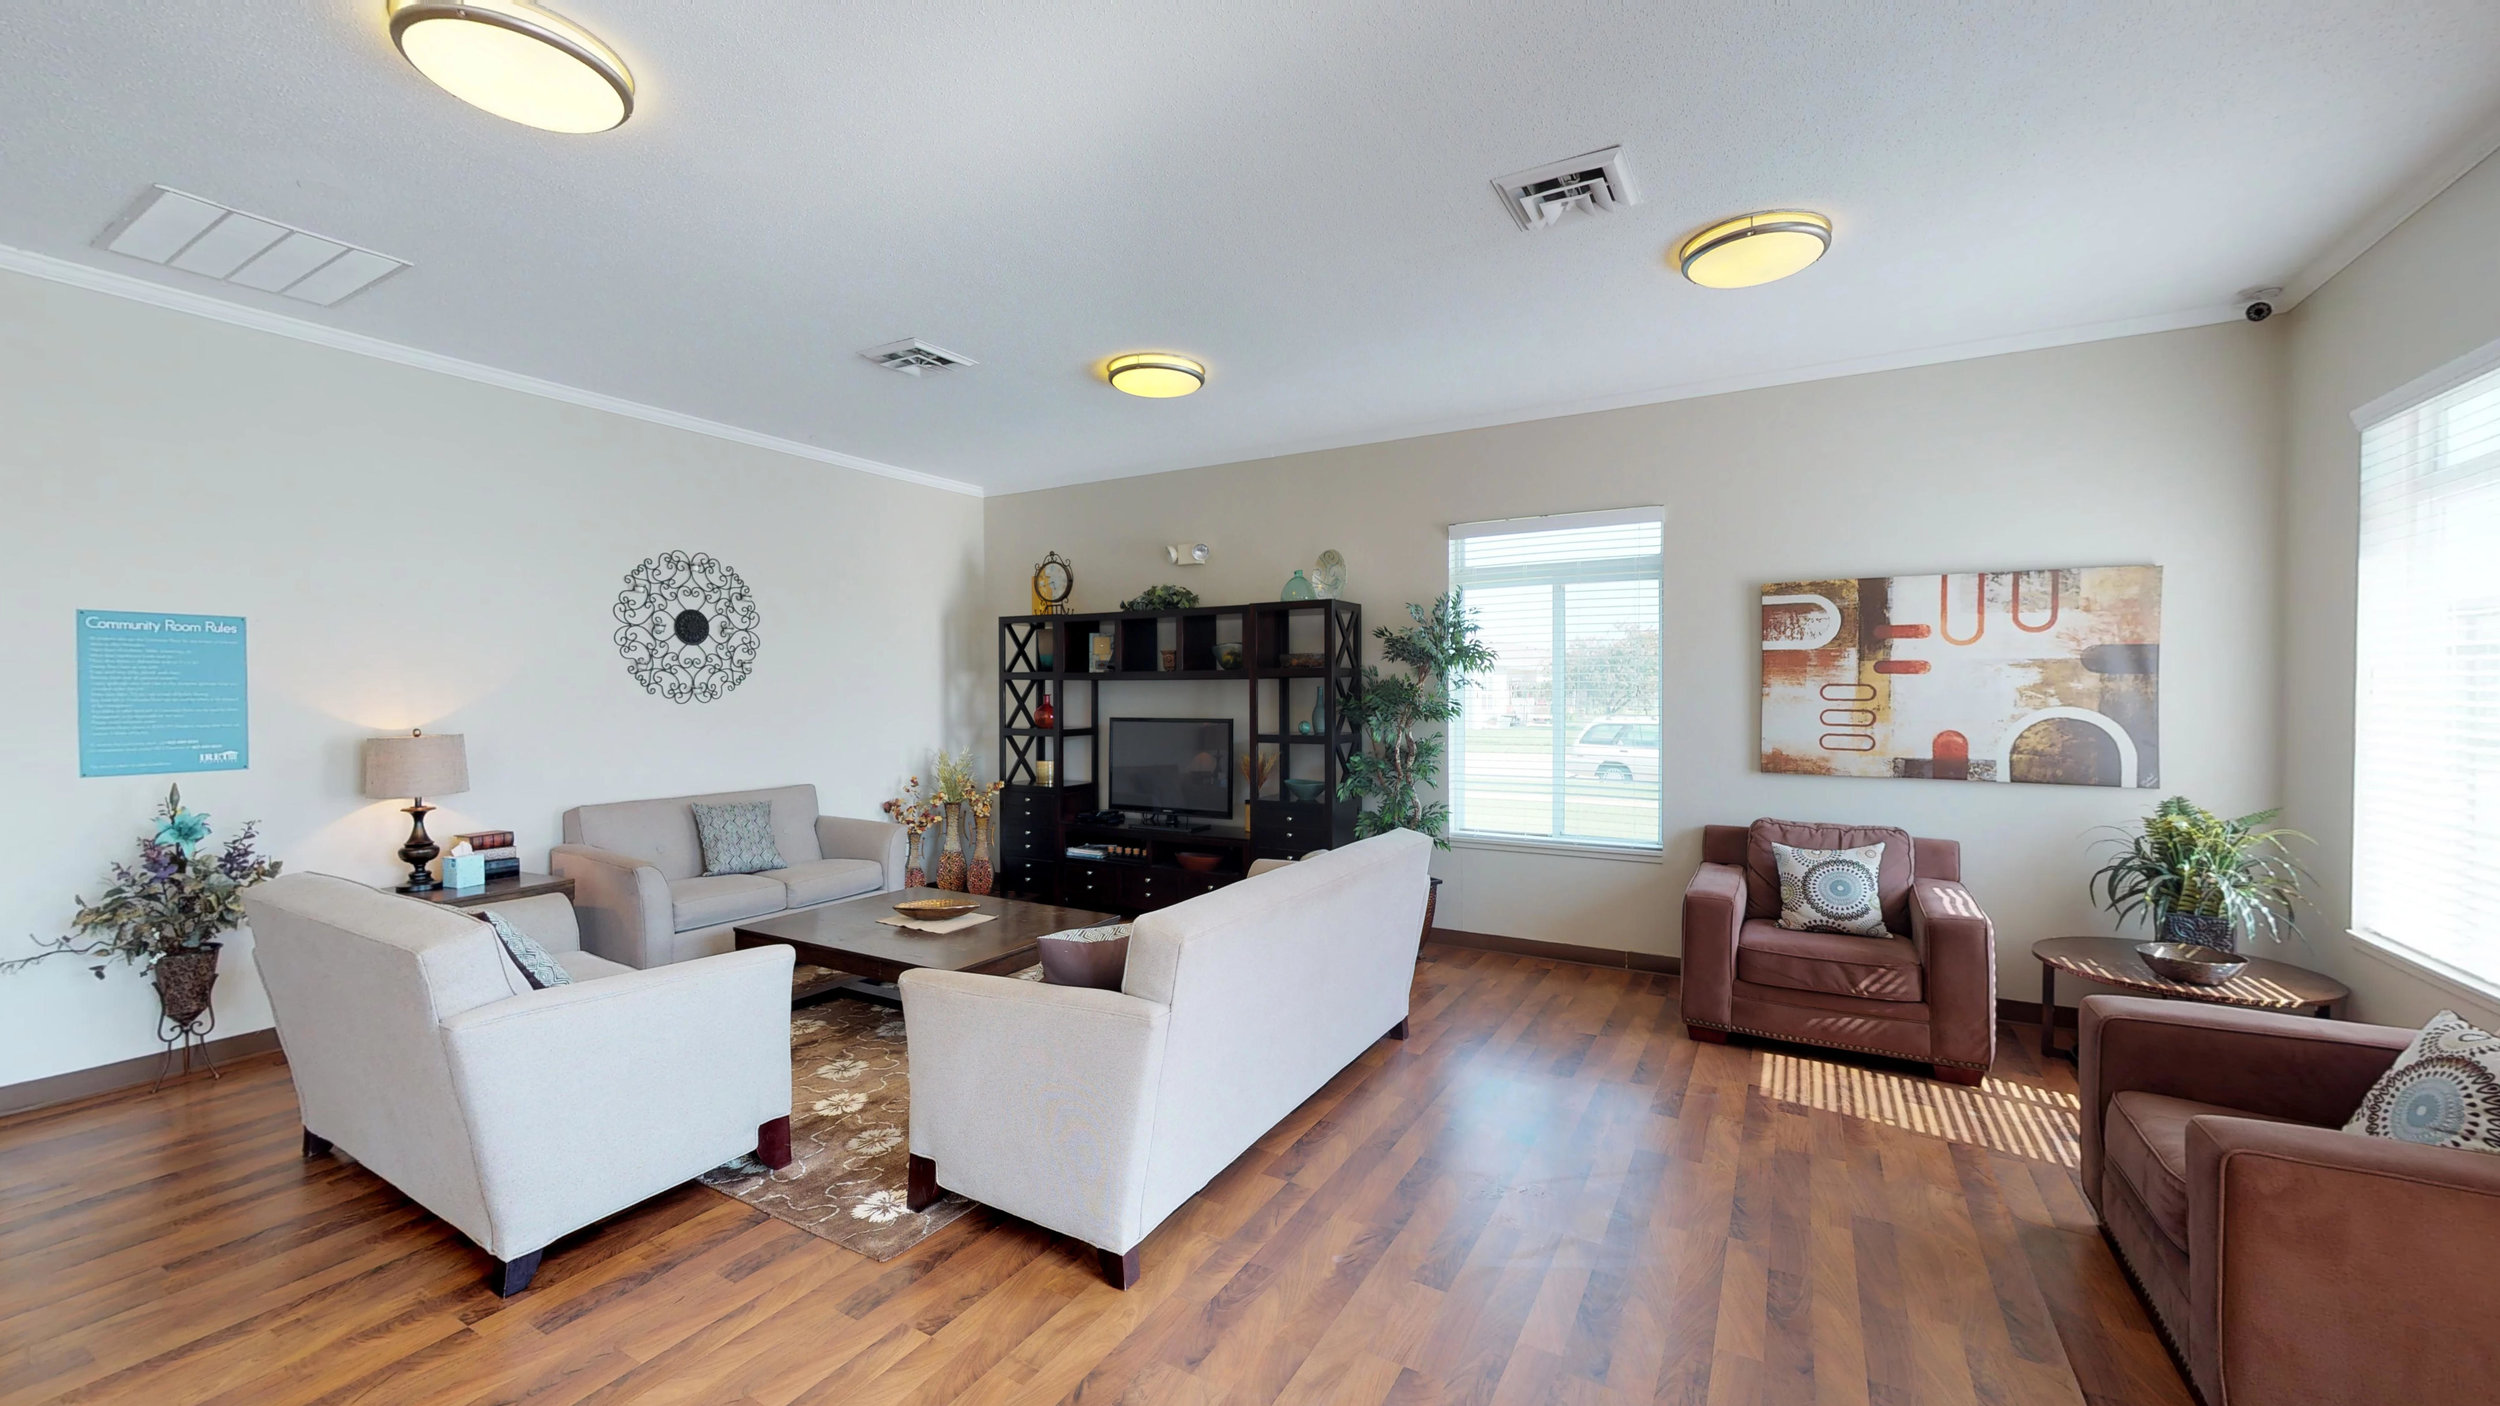 Entertain Guests at the Private Community Room